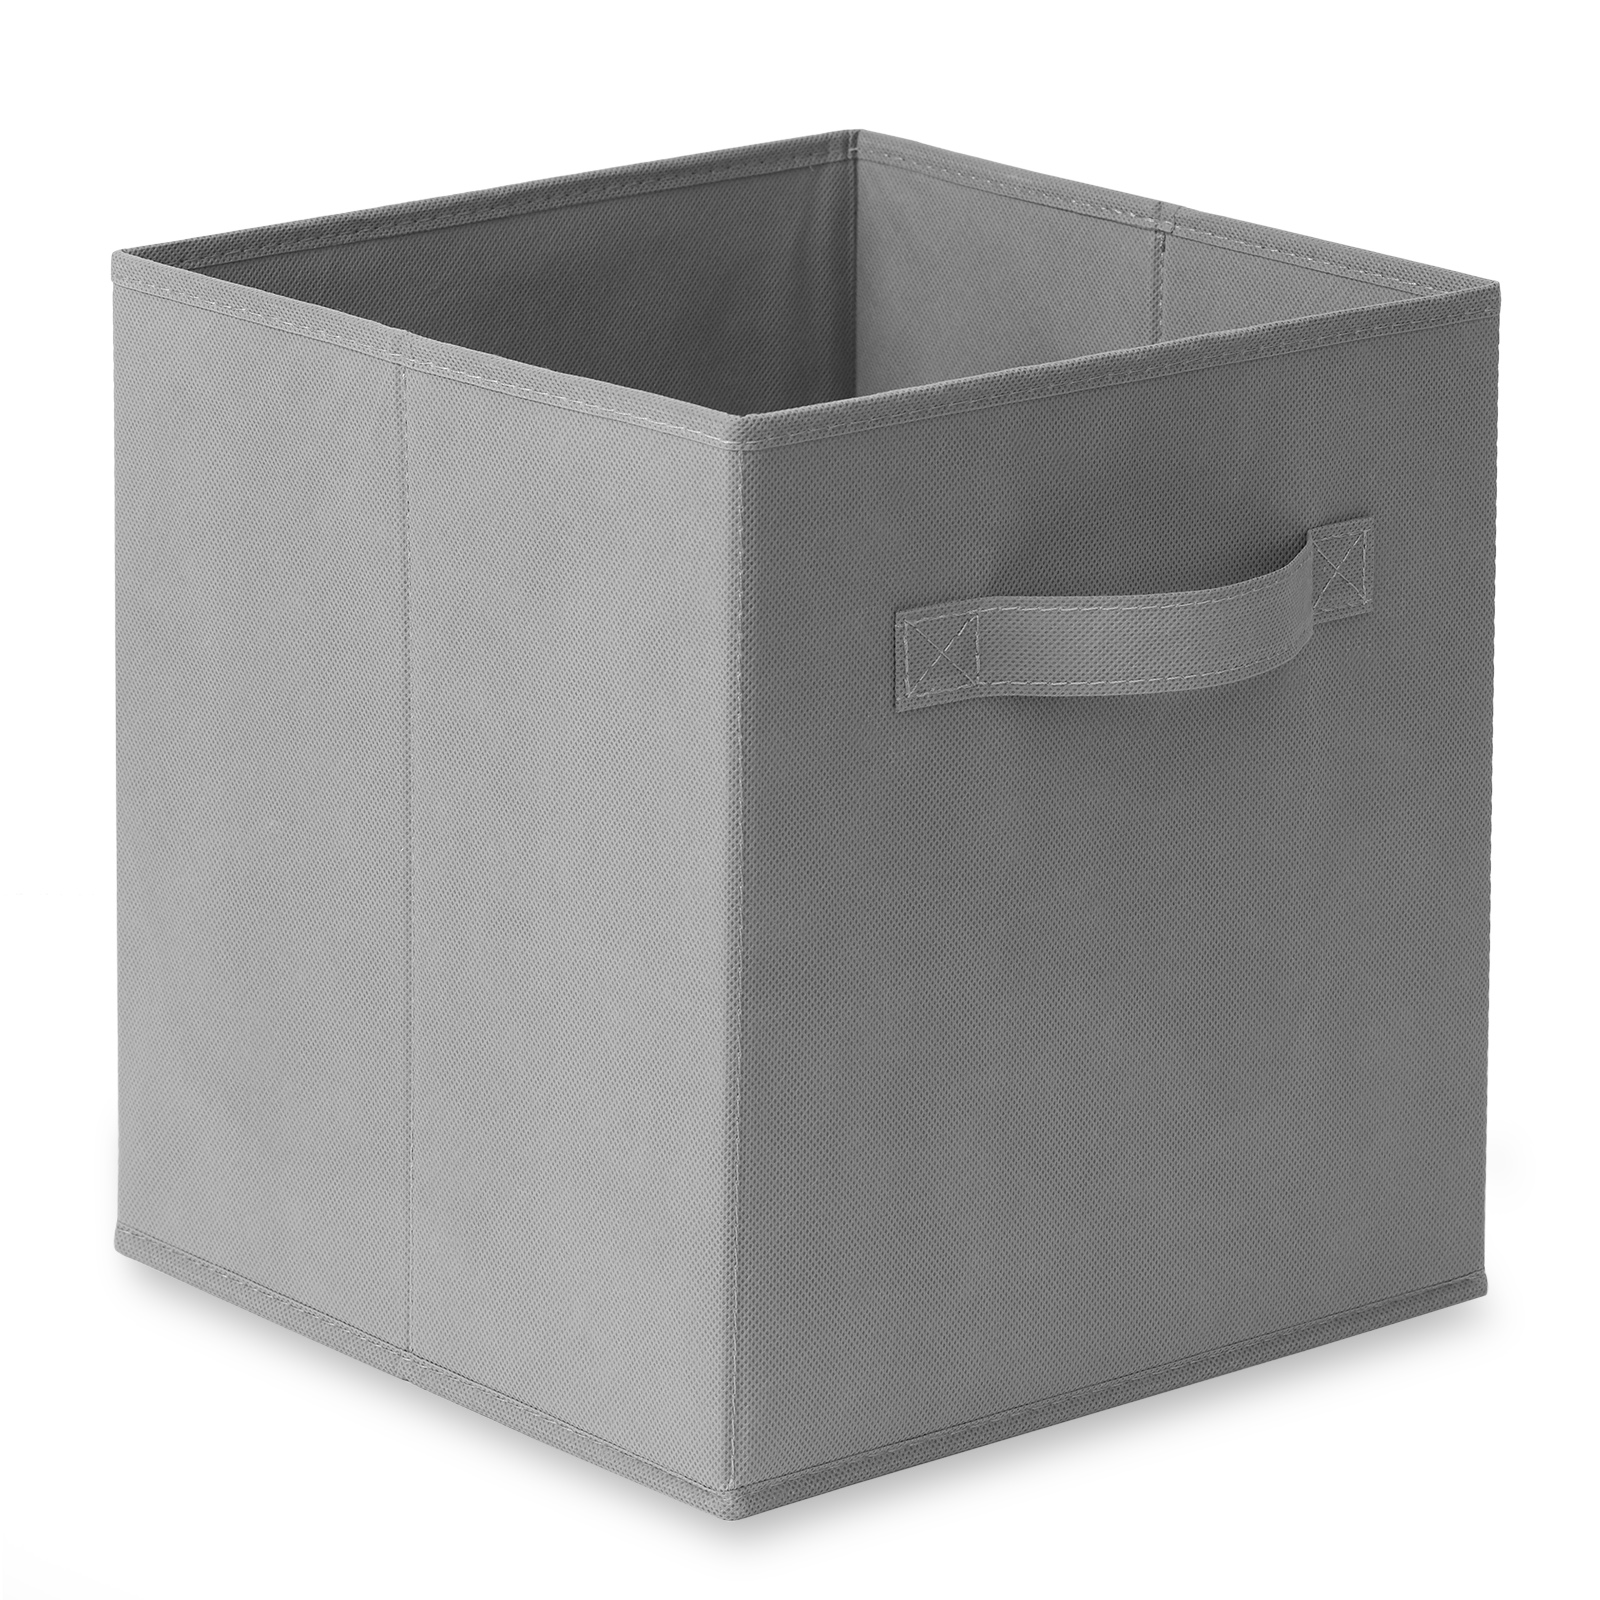 6-Collapsible-Foldable-Cloth-Fabric-Cubby-Cube-Storage-Bins-Baskets-for-Shelves thumbnail 19